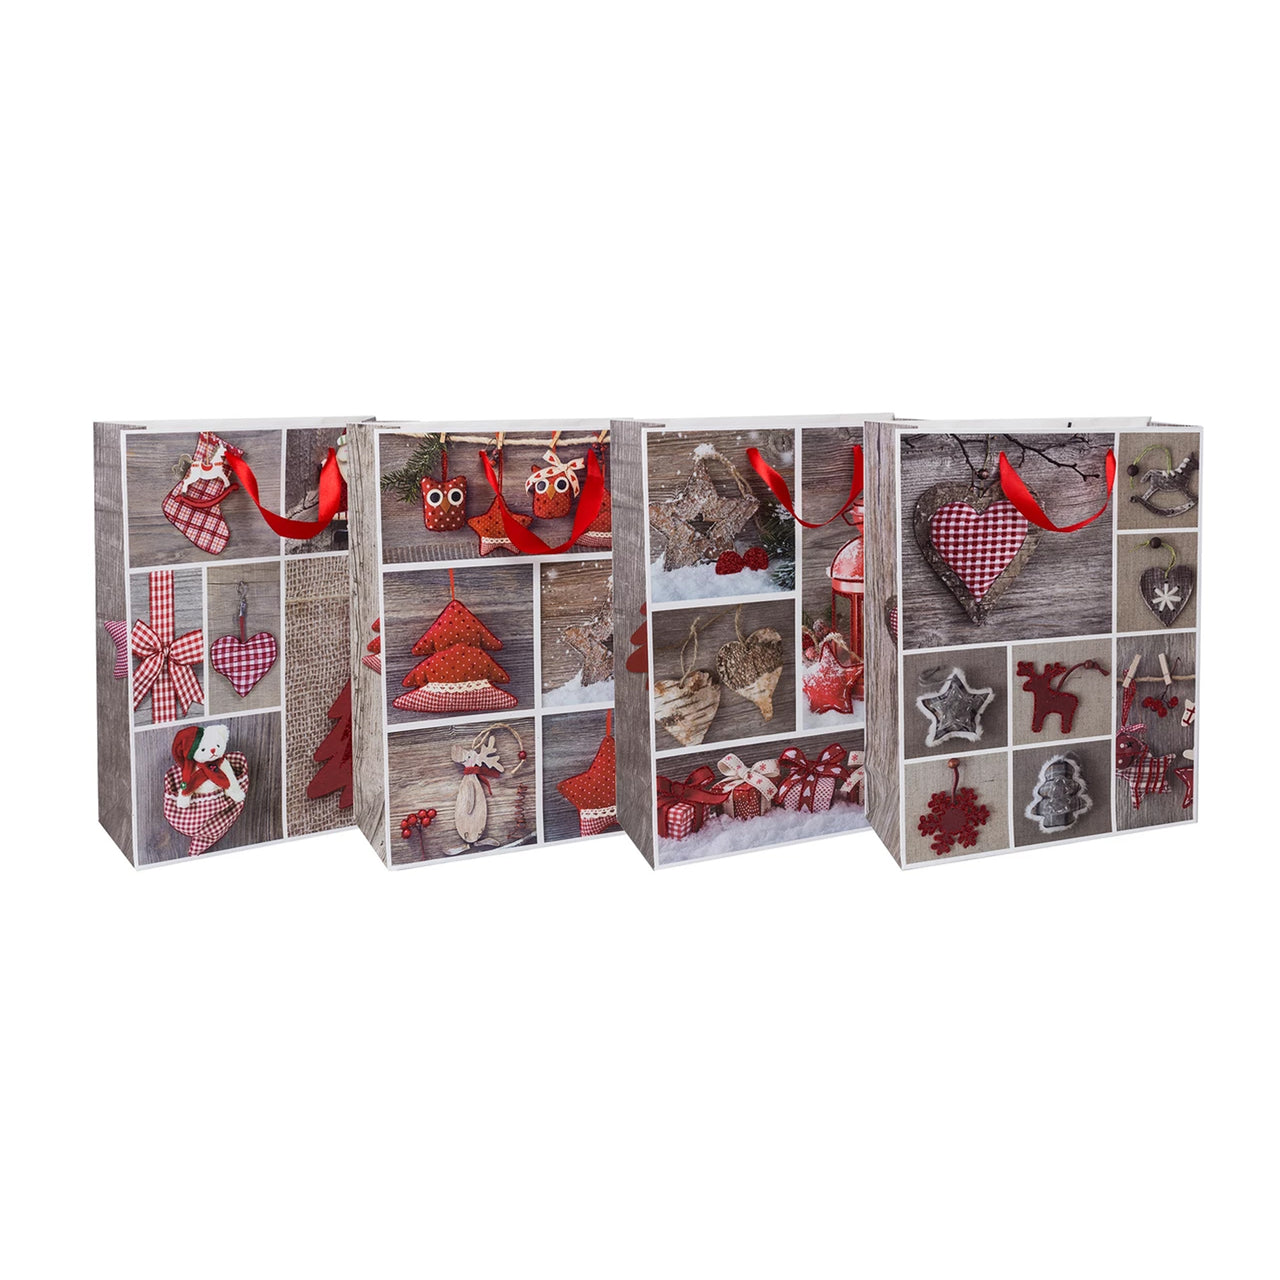 Festive Winter Christmas Gift Bags - Set of 4